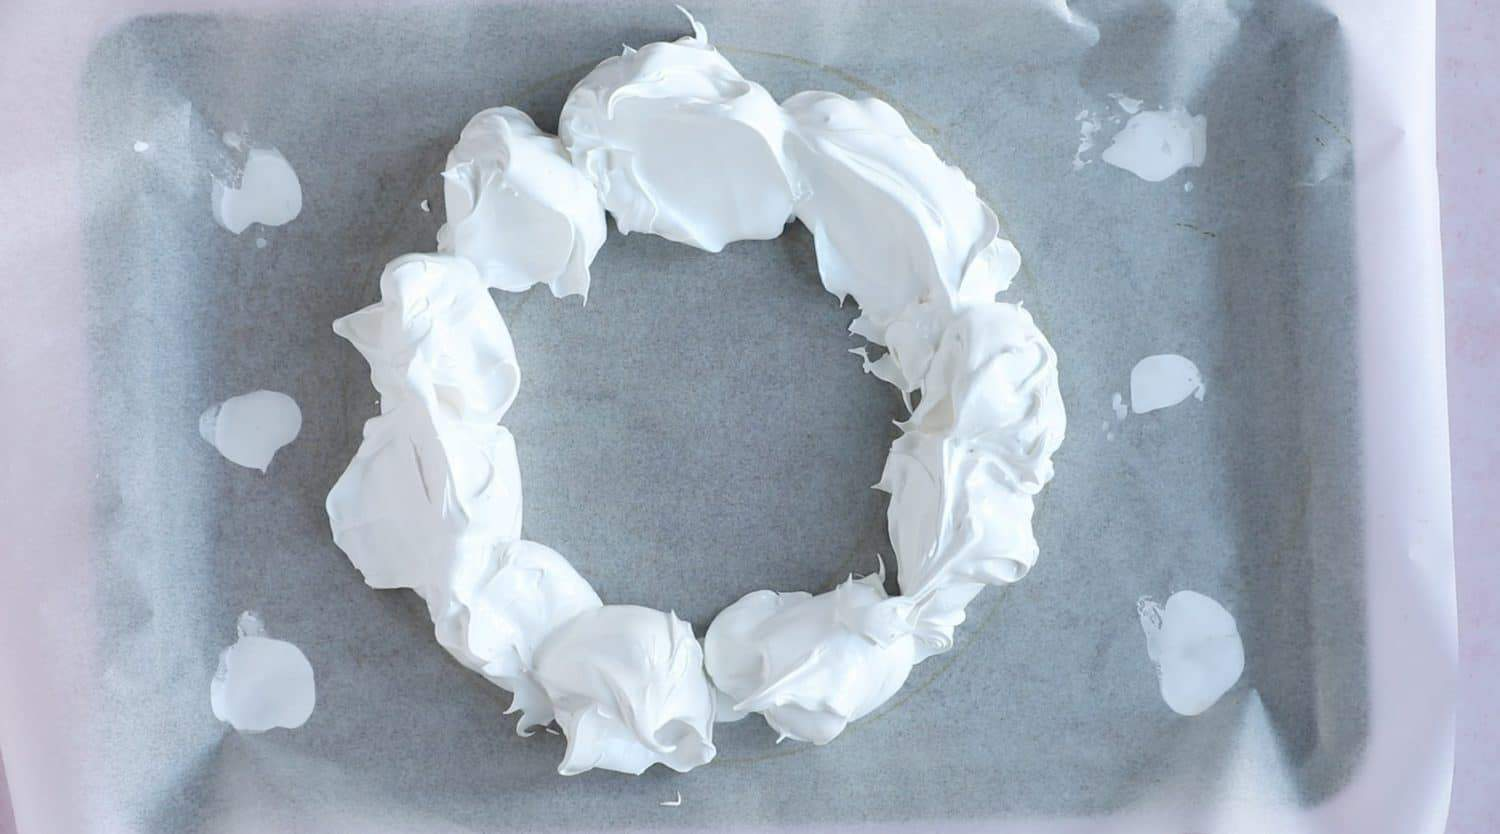 Adding meringue mixture in a wreath shape on to a baking tray.